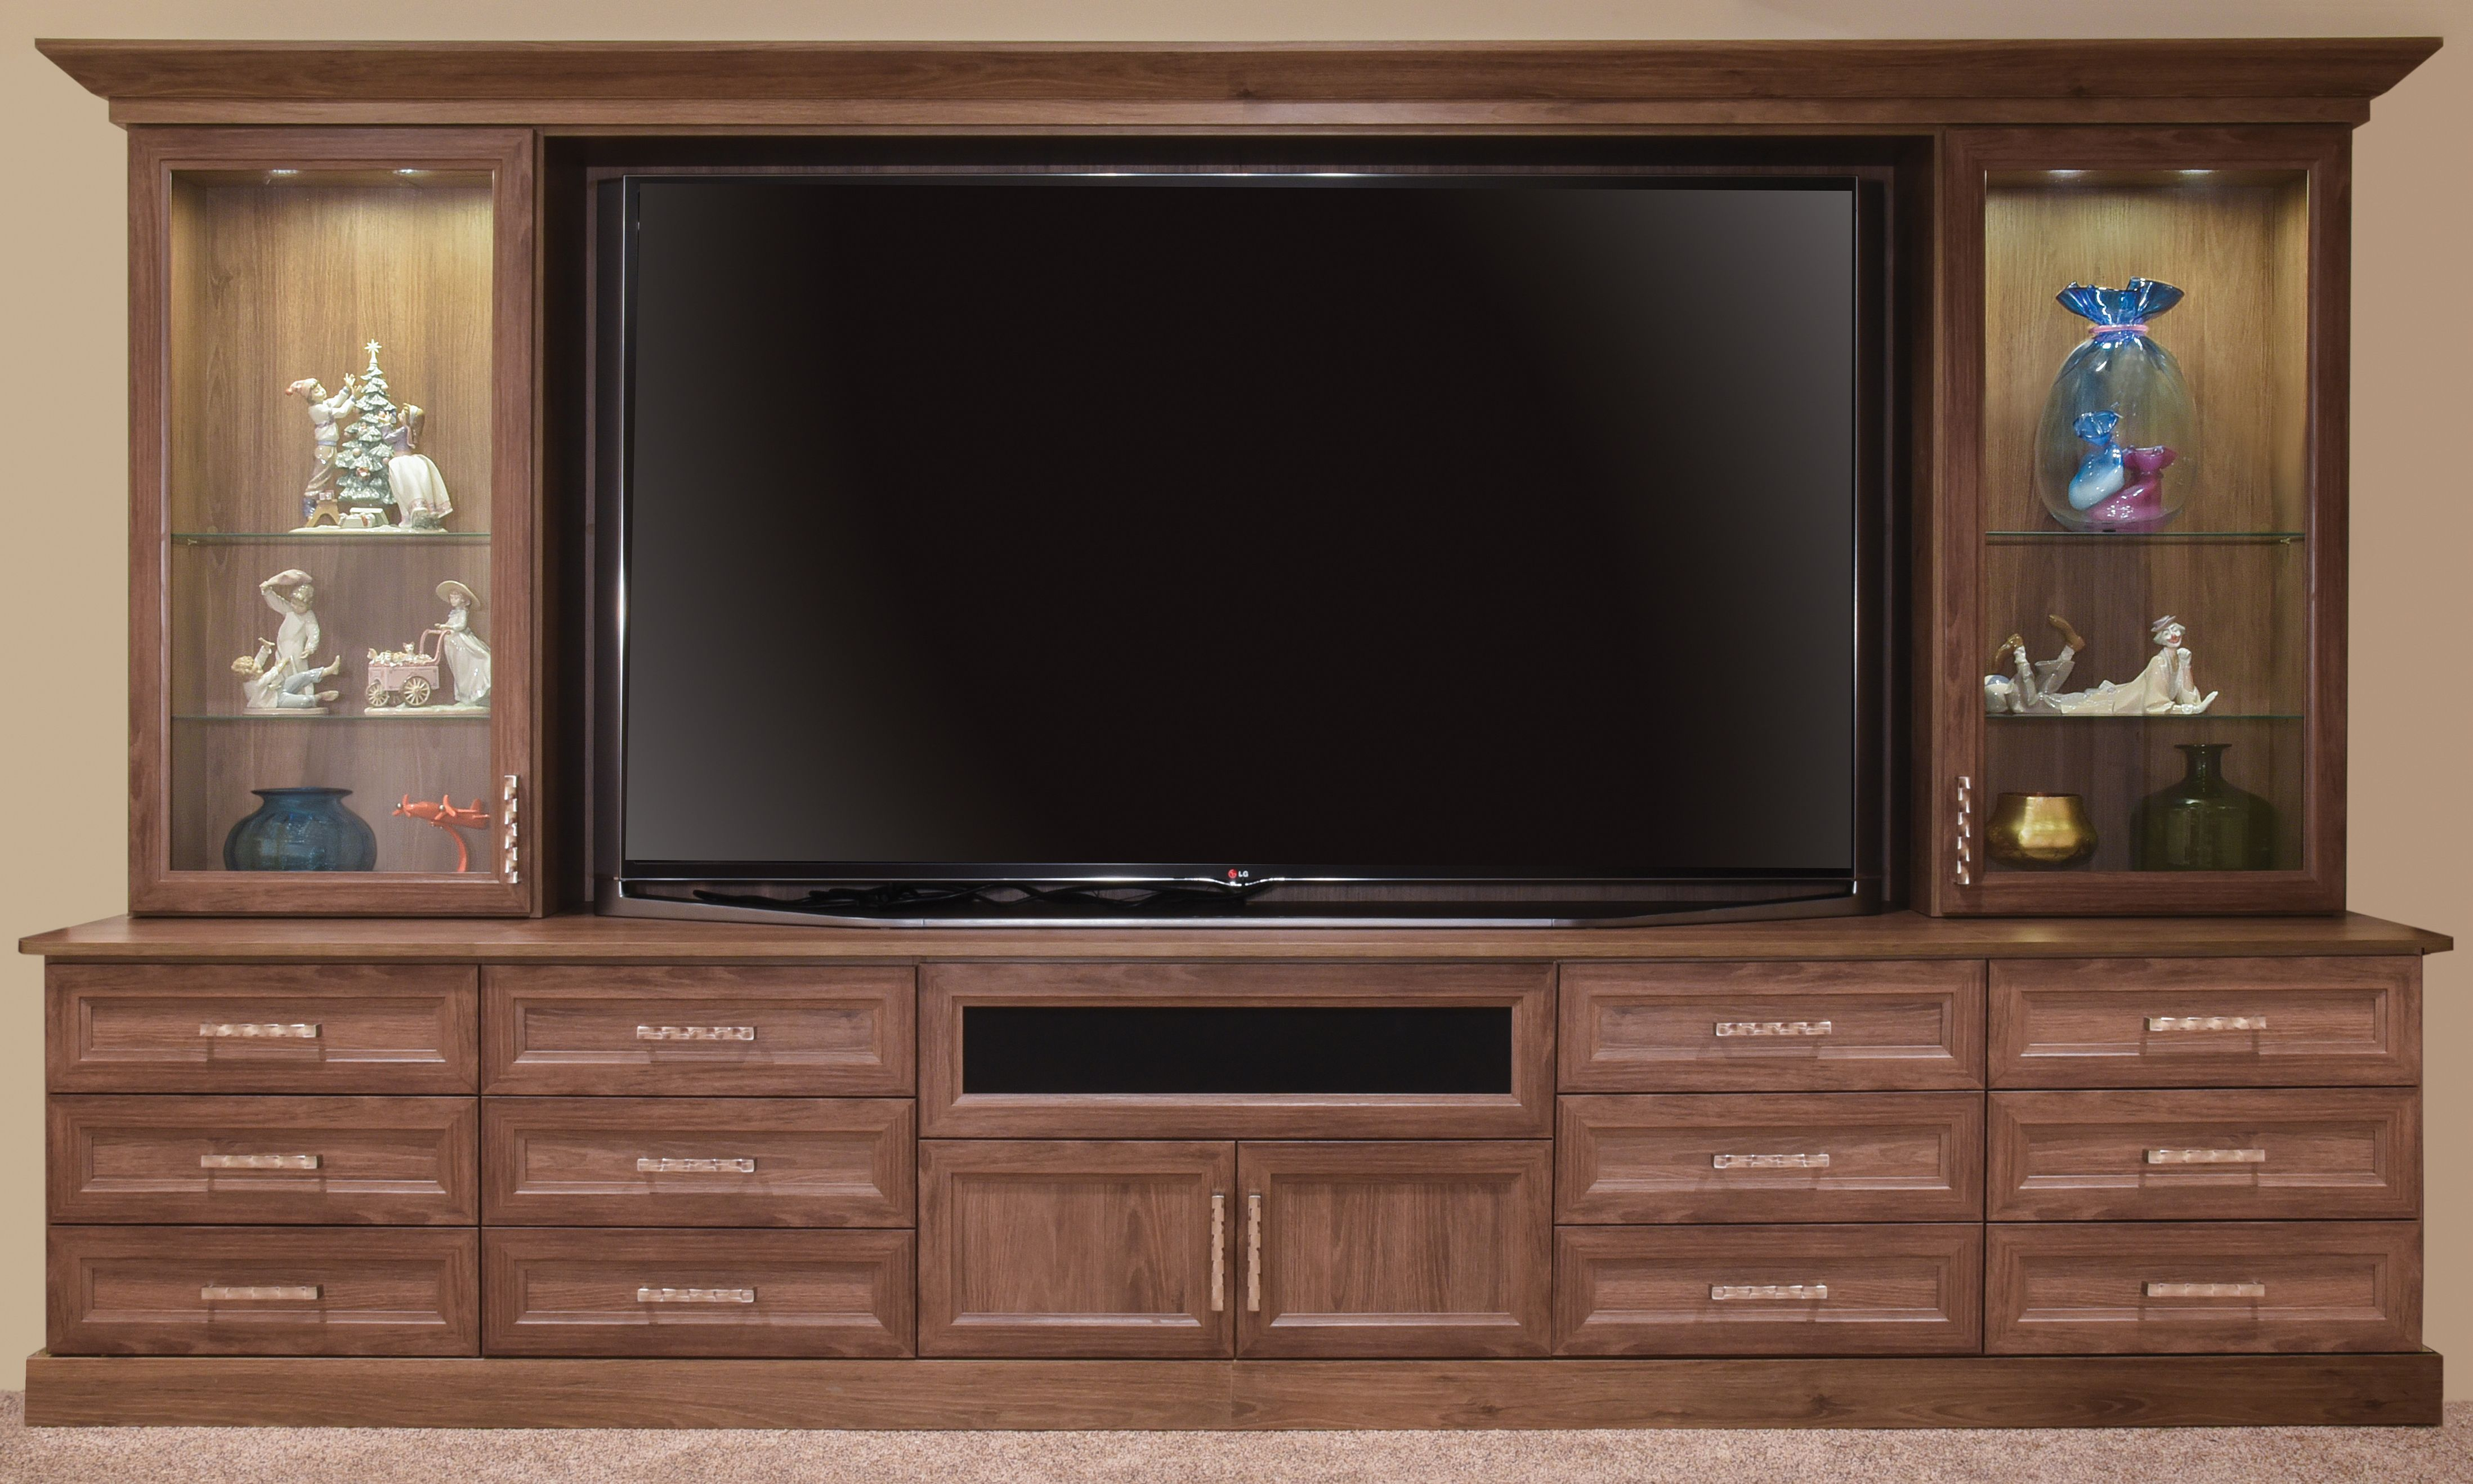 Entertainment center model of ours beautifully designed for those